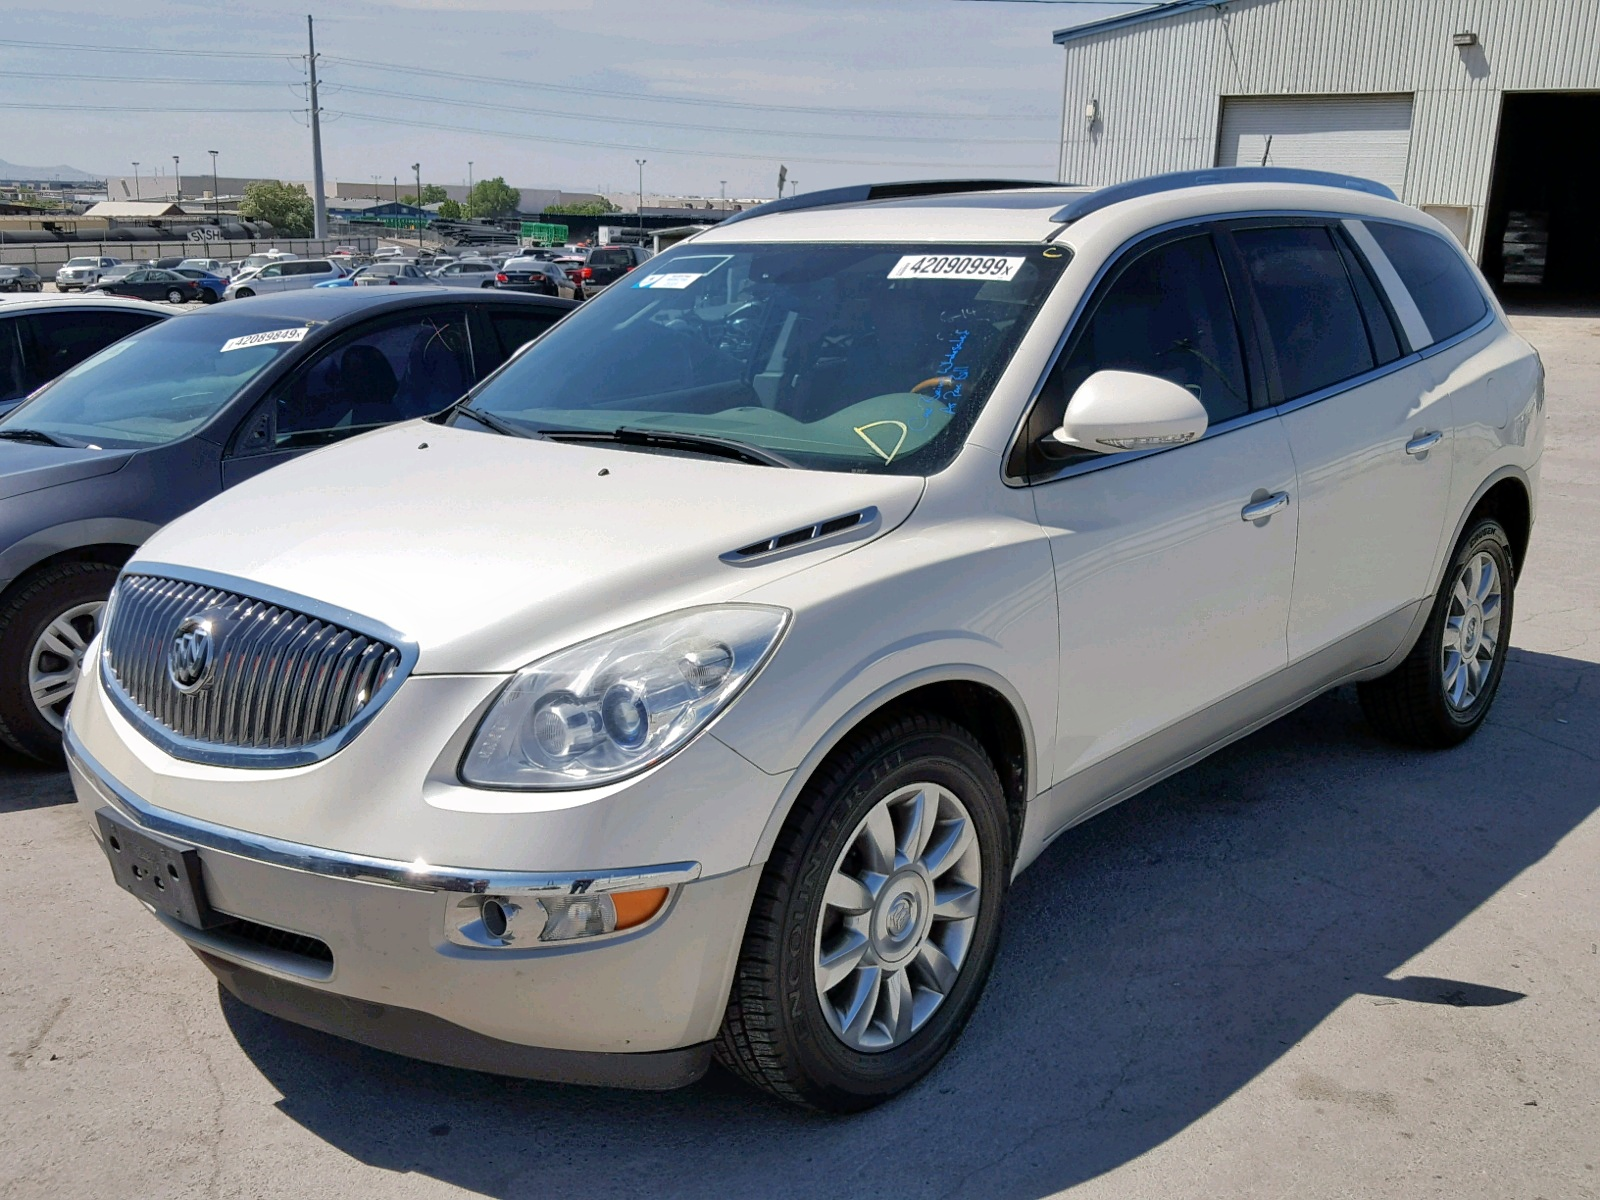 5GAKVCED1CJ321648 - 2012 Buick Enclave 3.6L Right View